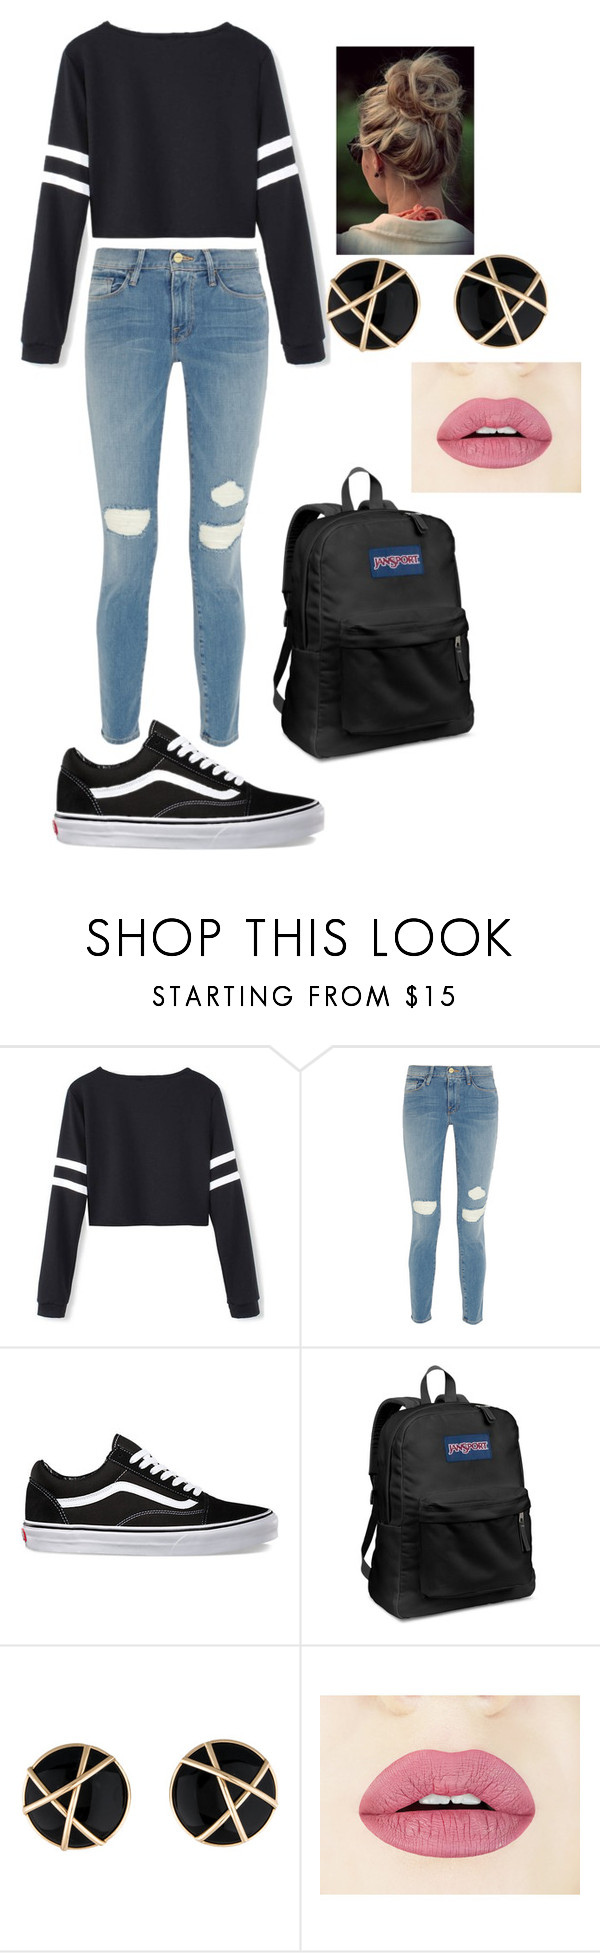 """""""Lazy Day"""" by jazpreet on Polyvore featuring Frame Denim, Vans, JanSport, women's clothing, women's fashion, women, female, woman, misses and juniors"""